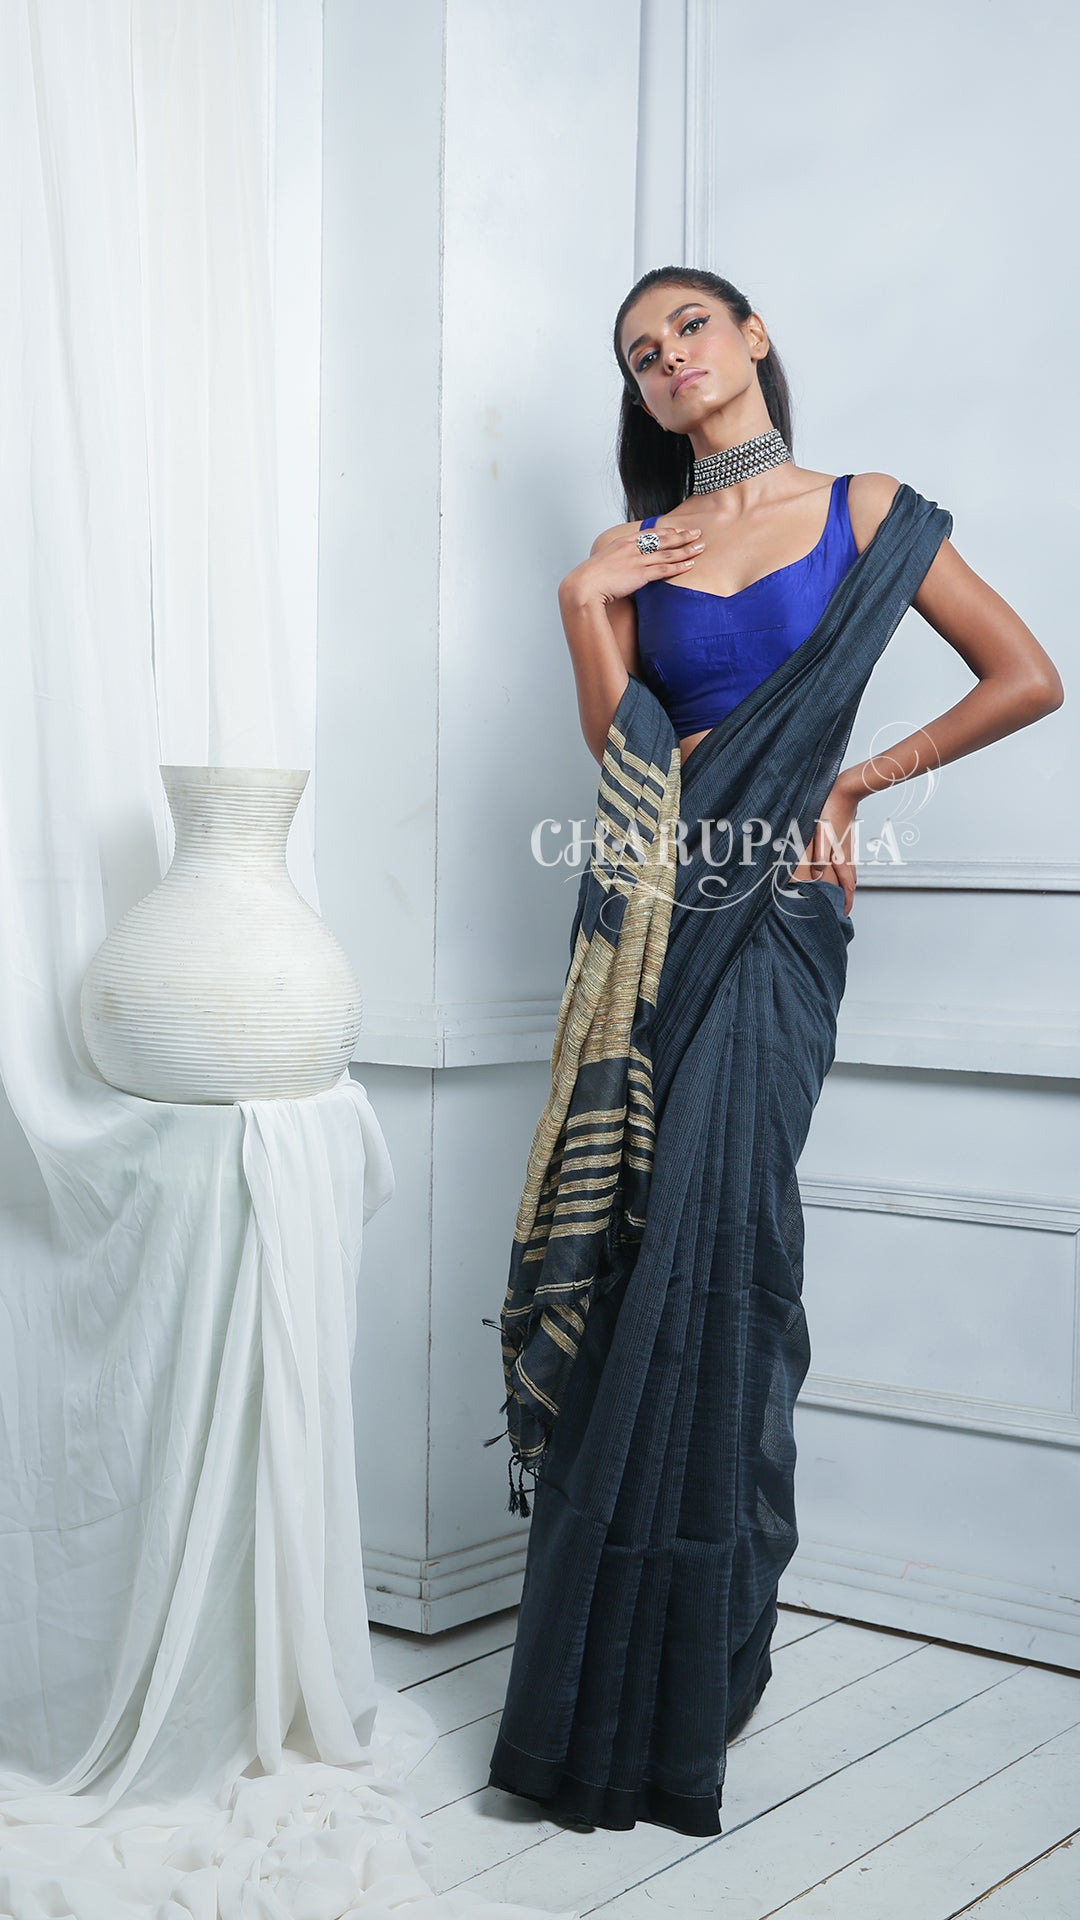 Unusual Shade Of Blue Blended Cotton Saree Brings You Comfort With Style. Perfect For Office, Daily Wear And Party Wear. Easy To Wash And Home Care. - Charupama